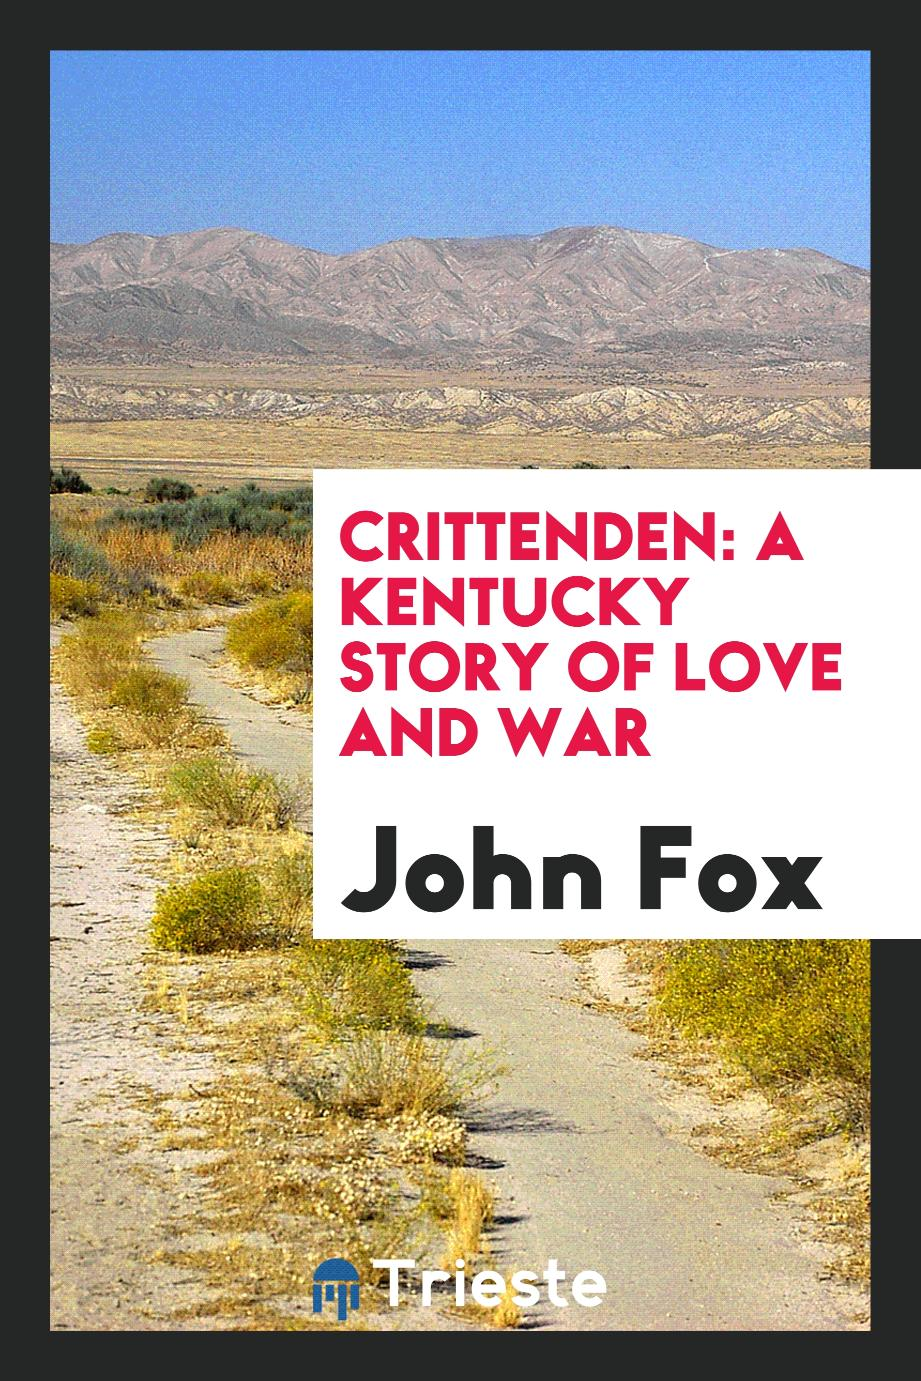 Crittenden: A Kentucky Story of Love and War